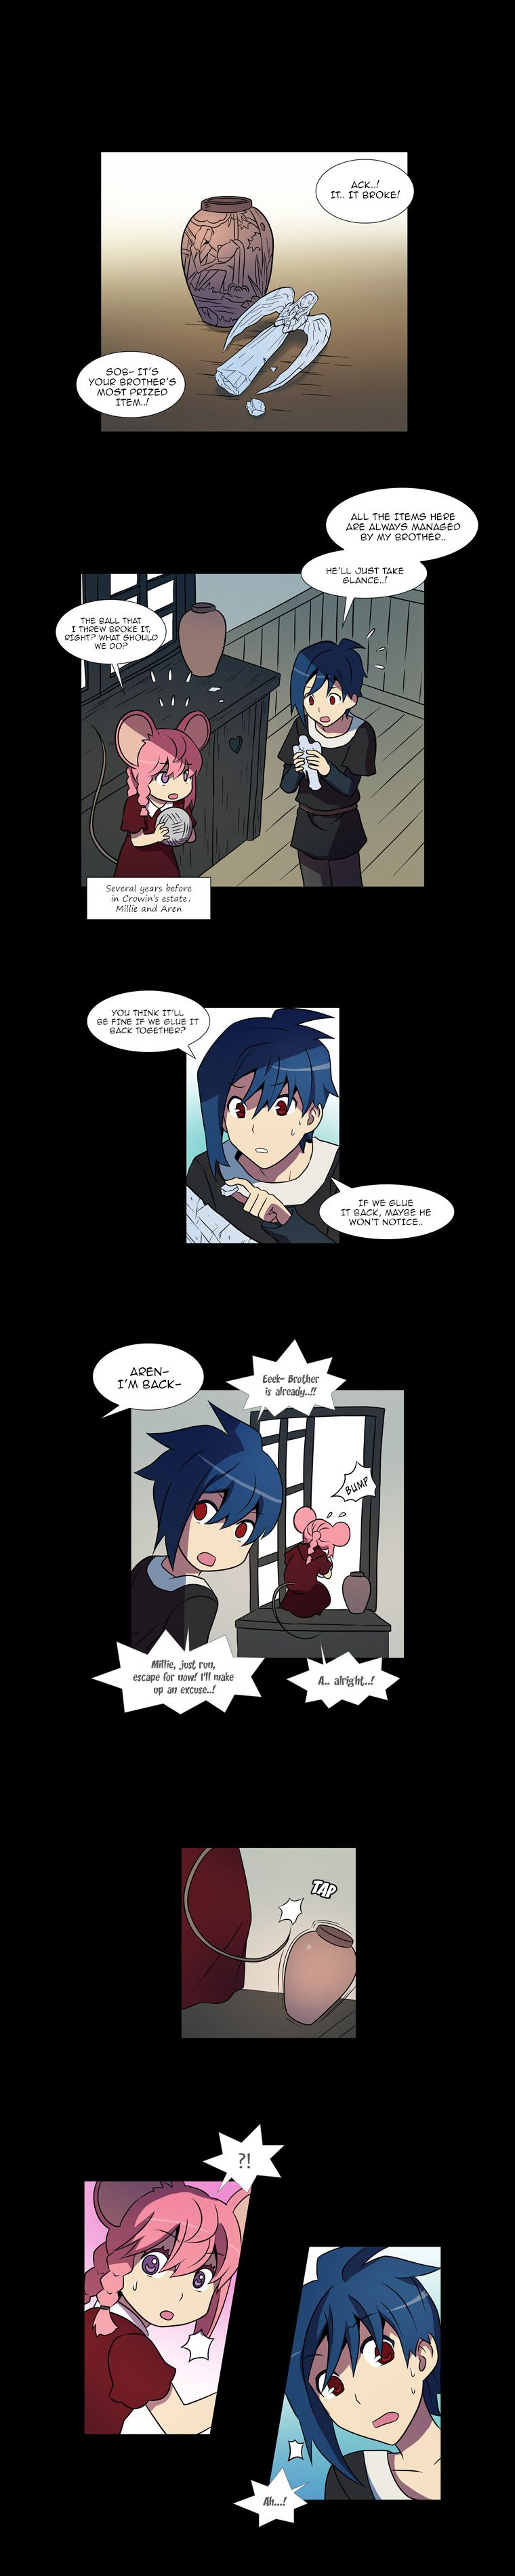 Lime Odyssey: The Chronicles of ORTA 15 Page 2